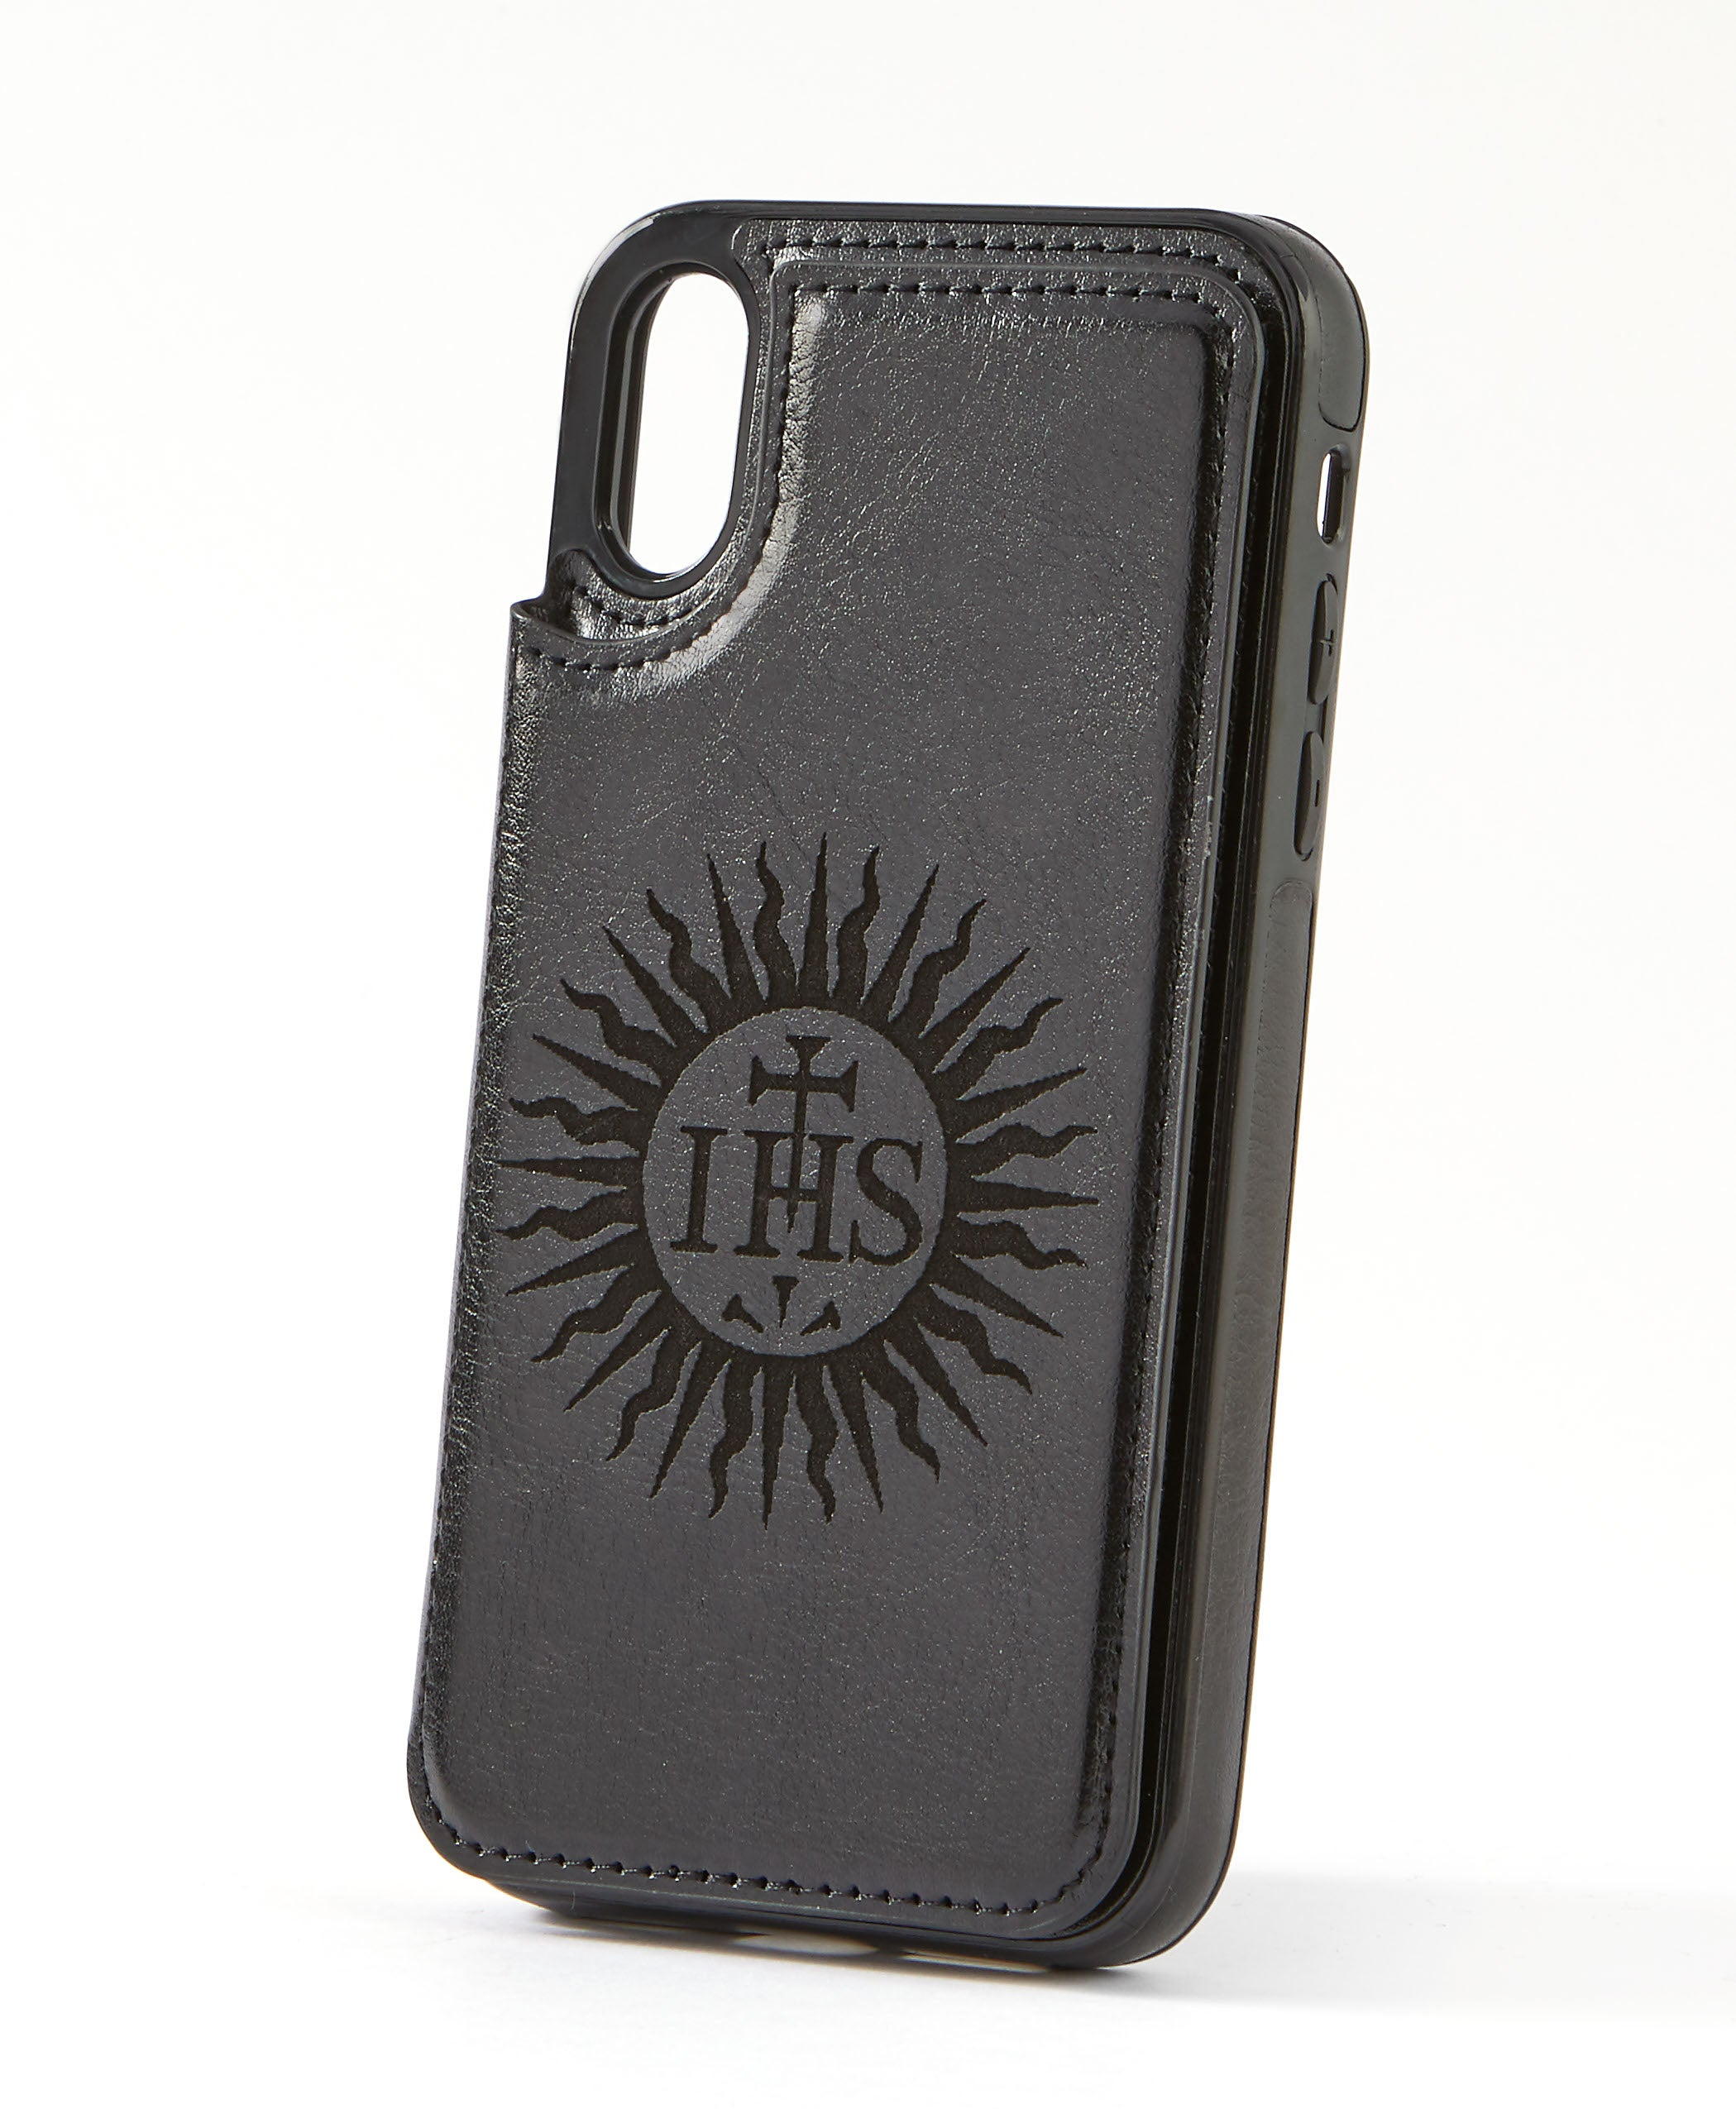 Sunburst Black Leather Wallet Case for iPhone XR